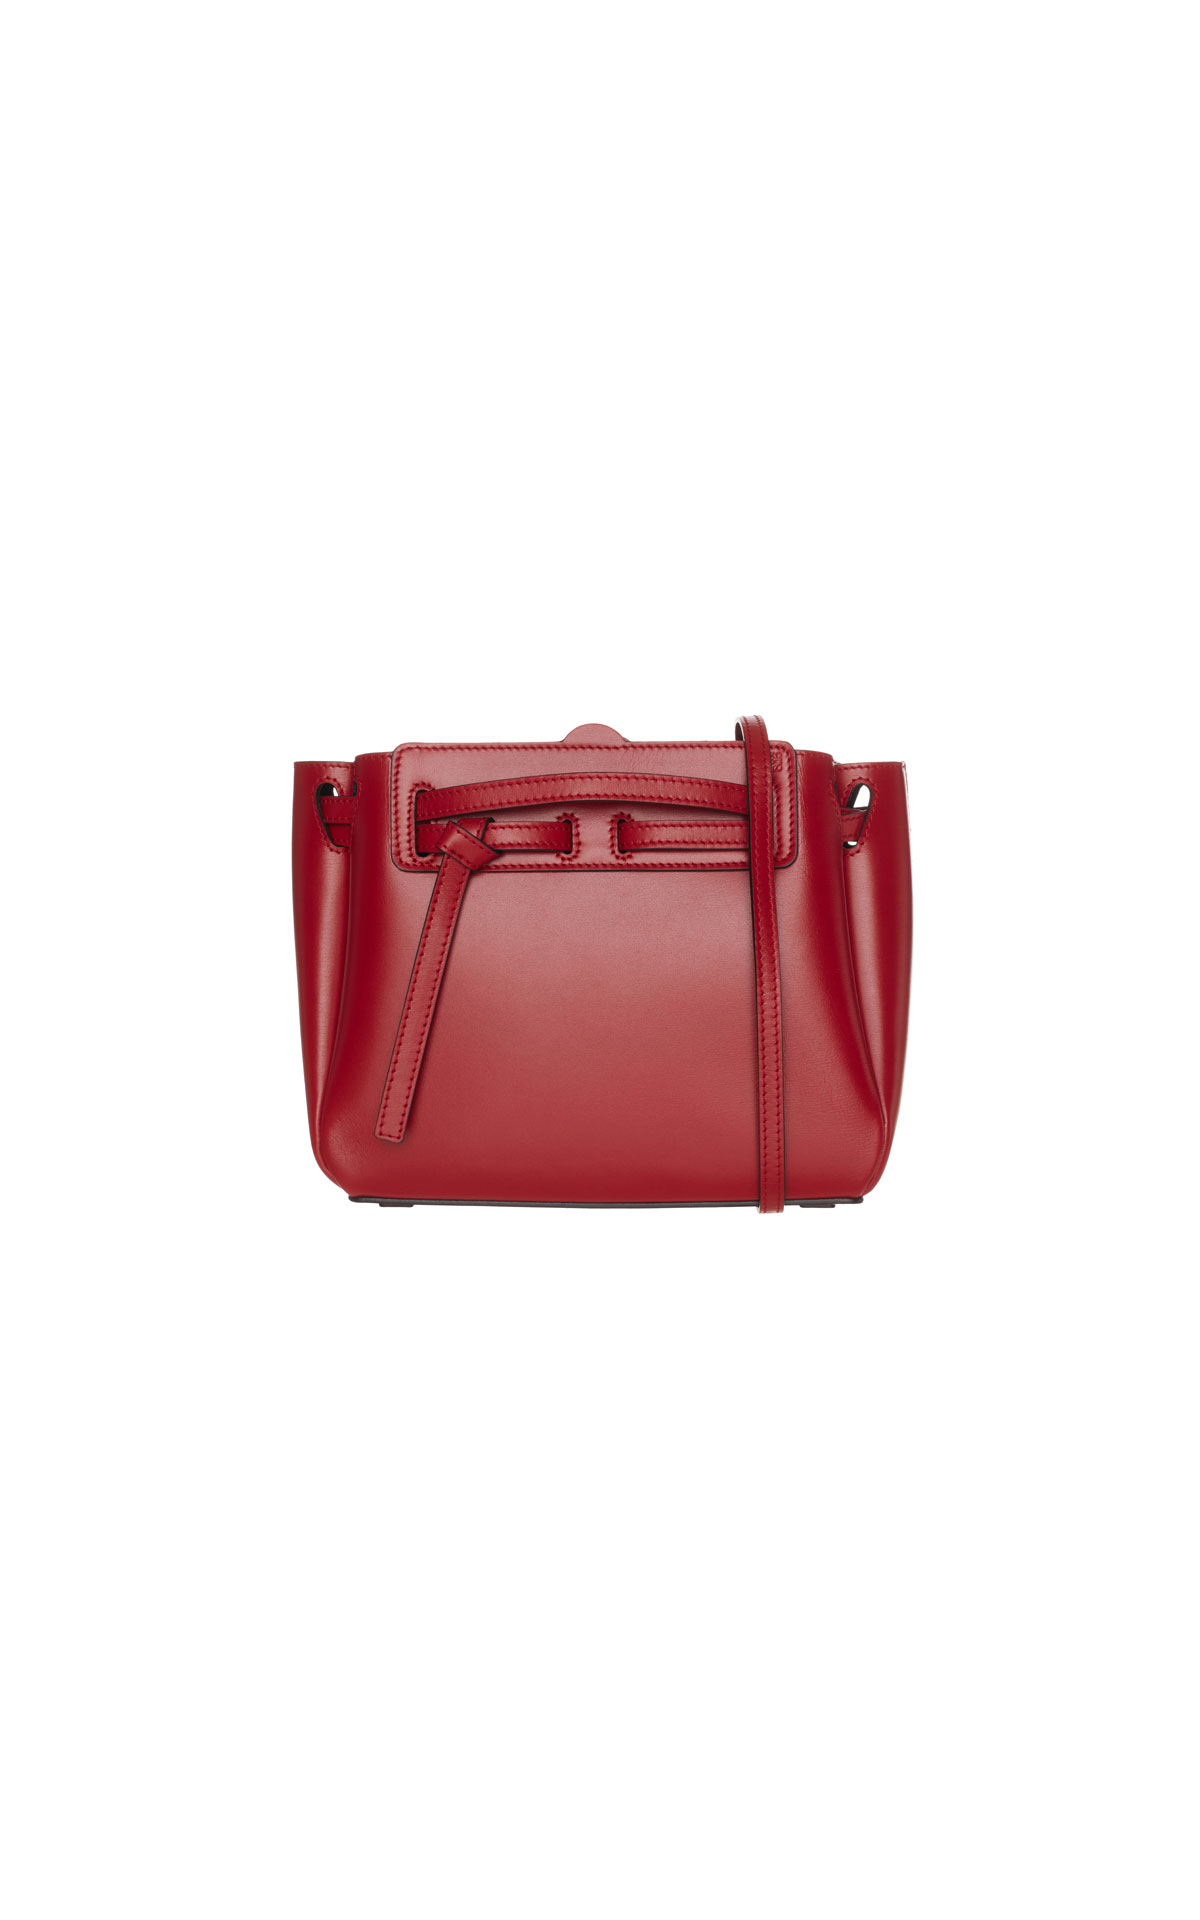 Loewe Lazo mini bag rouge from Bicester Village